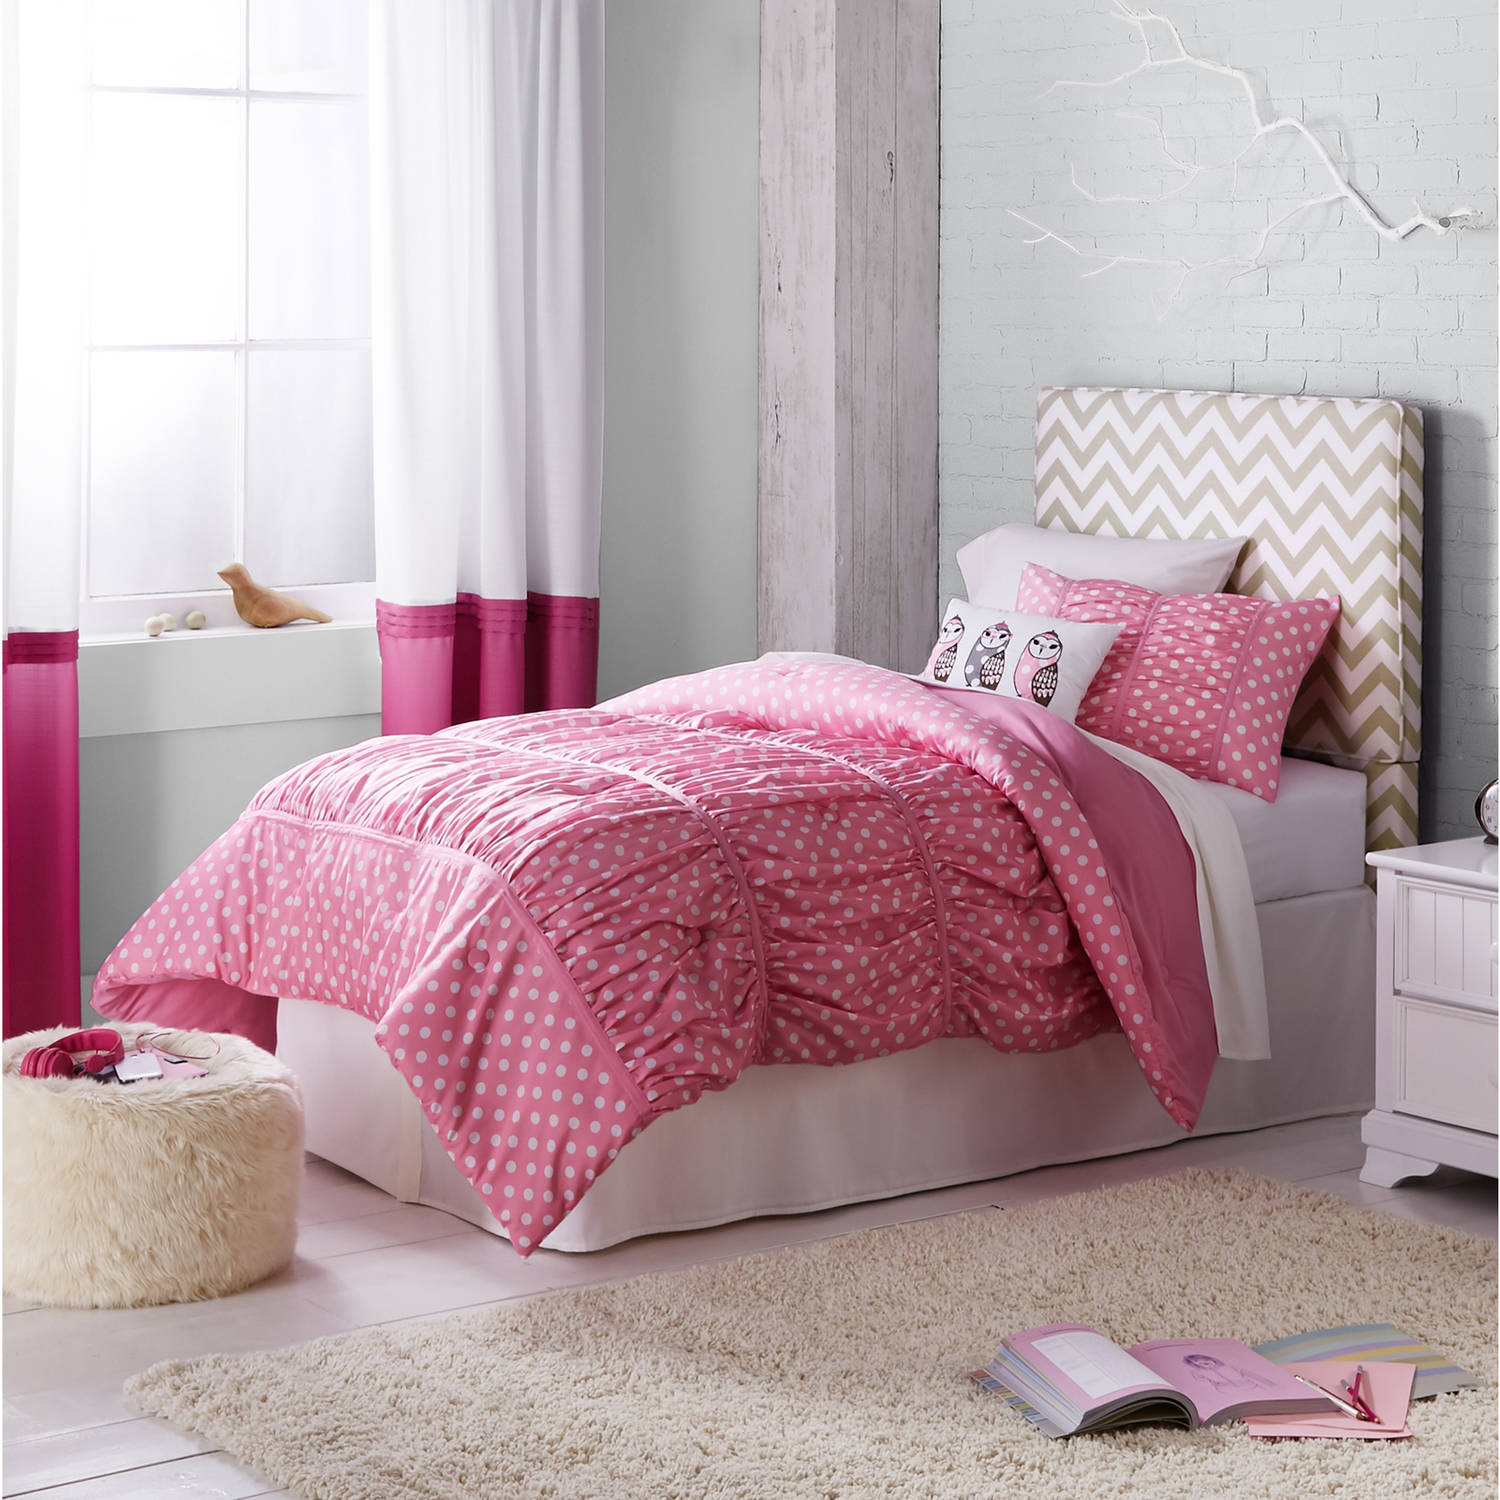 Better Homes and Gardens Kids Ruched Dots Bedding Comforter Set